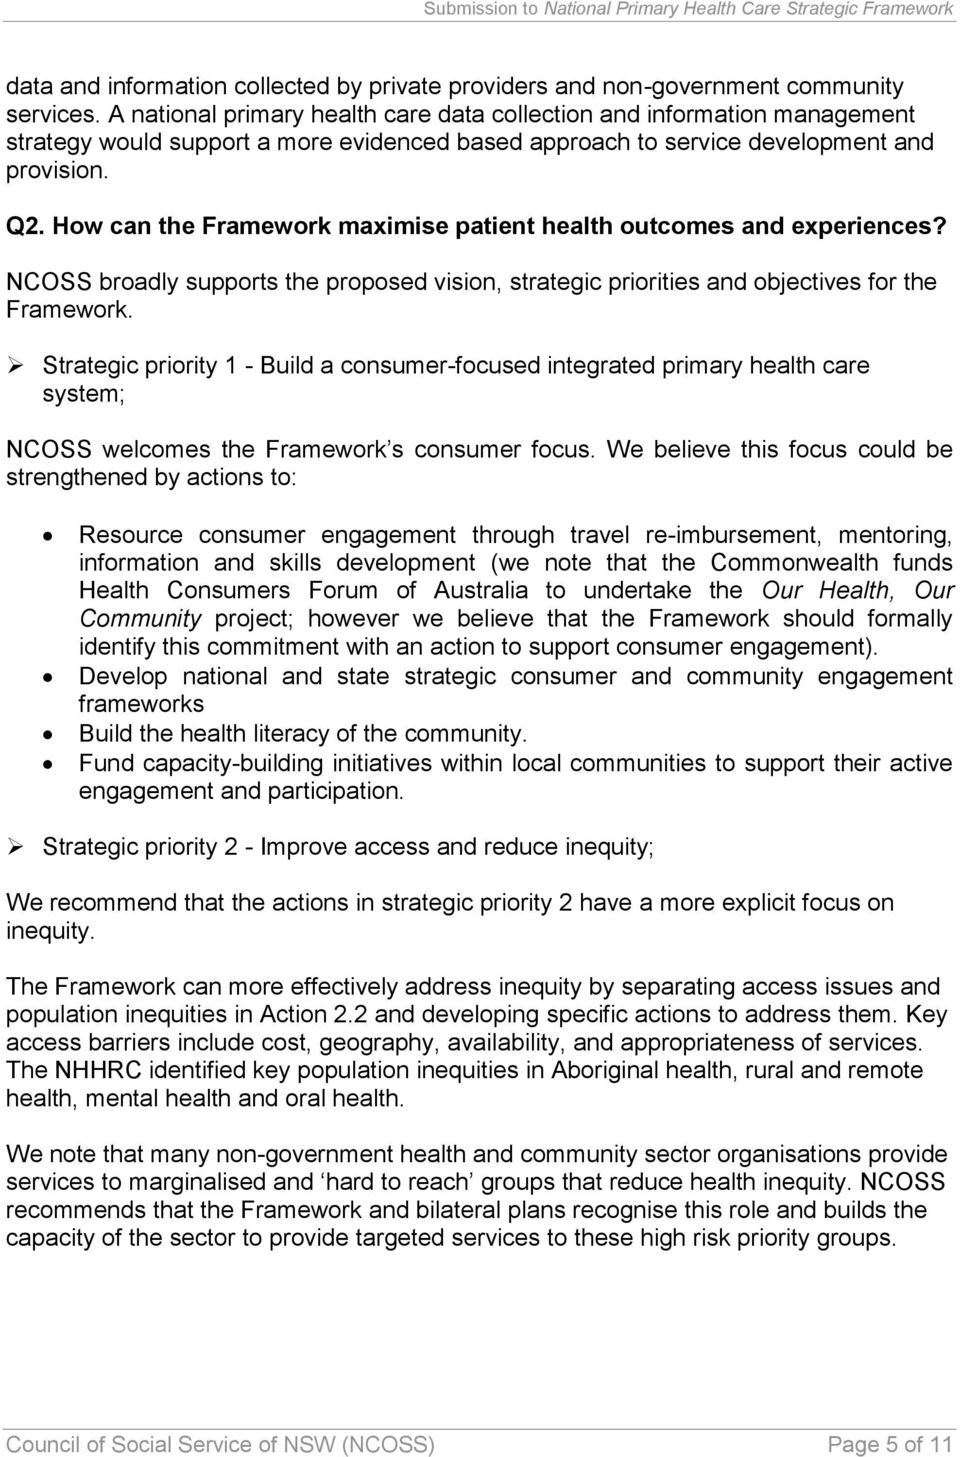 How can the Framework maximise patient health outcomes and experiences? NCOSS broadly supports the proposed vision, strategic priorities and objectives for the Framework.